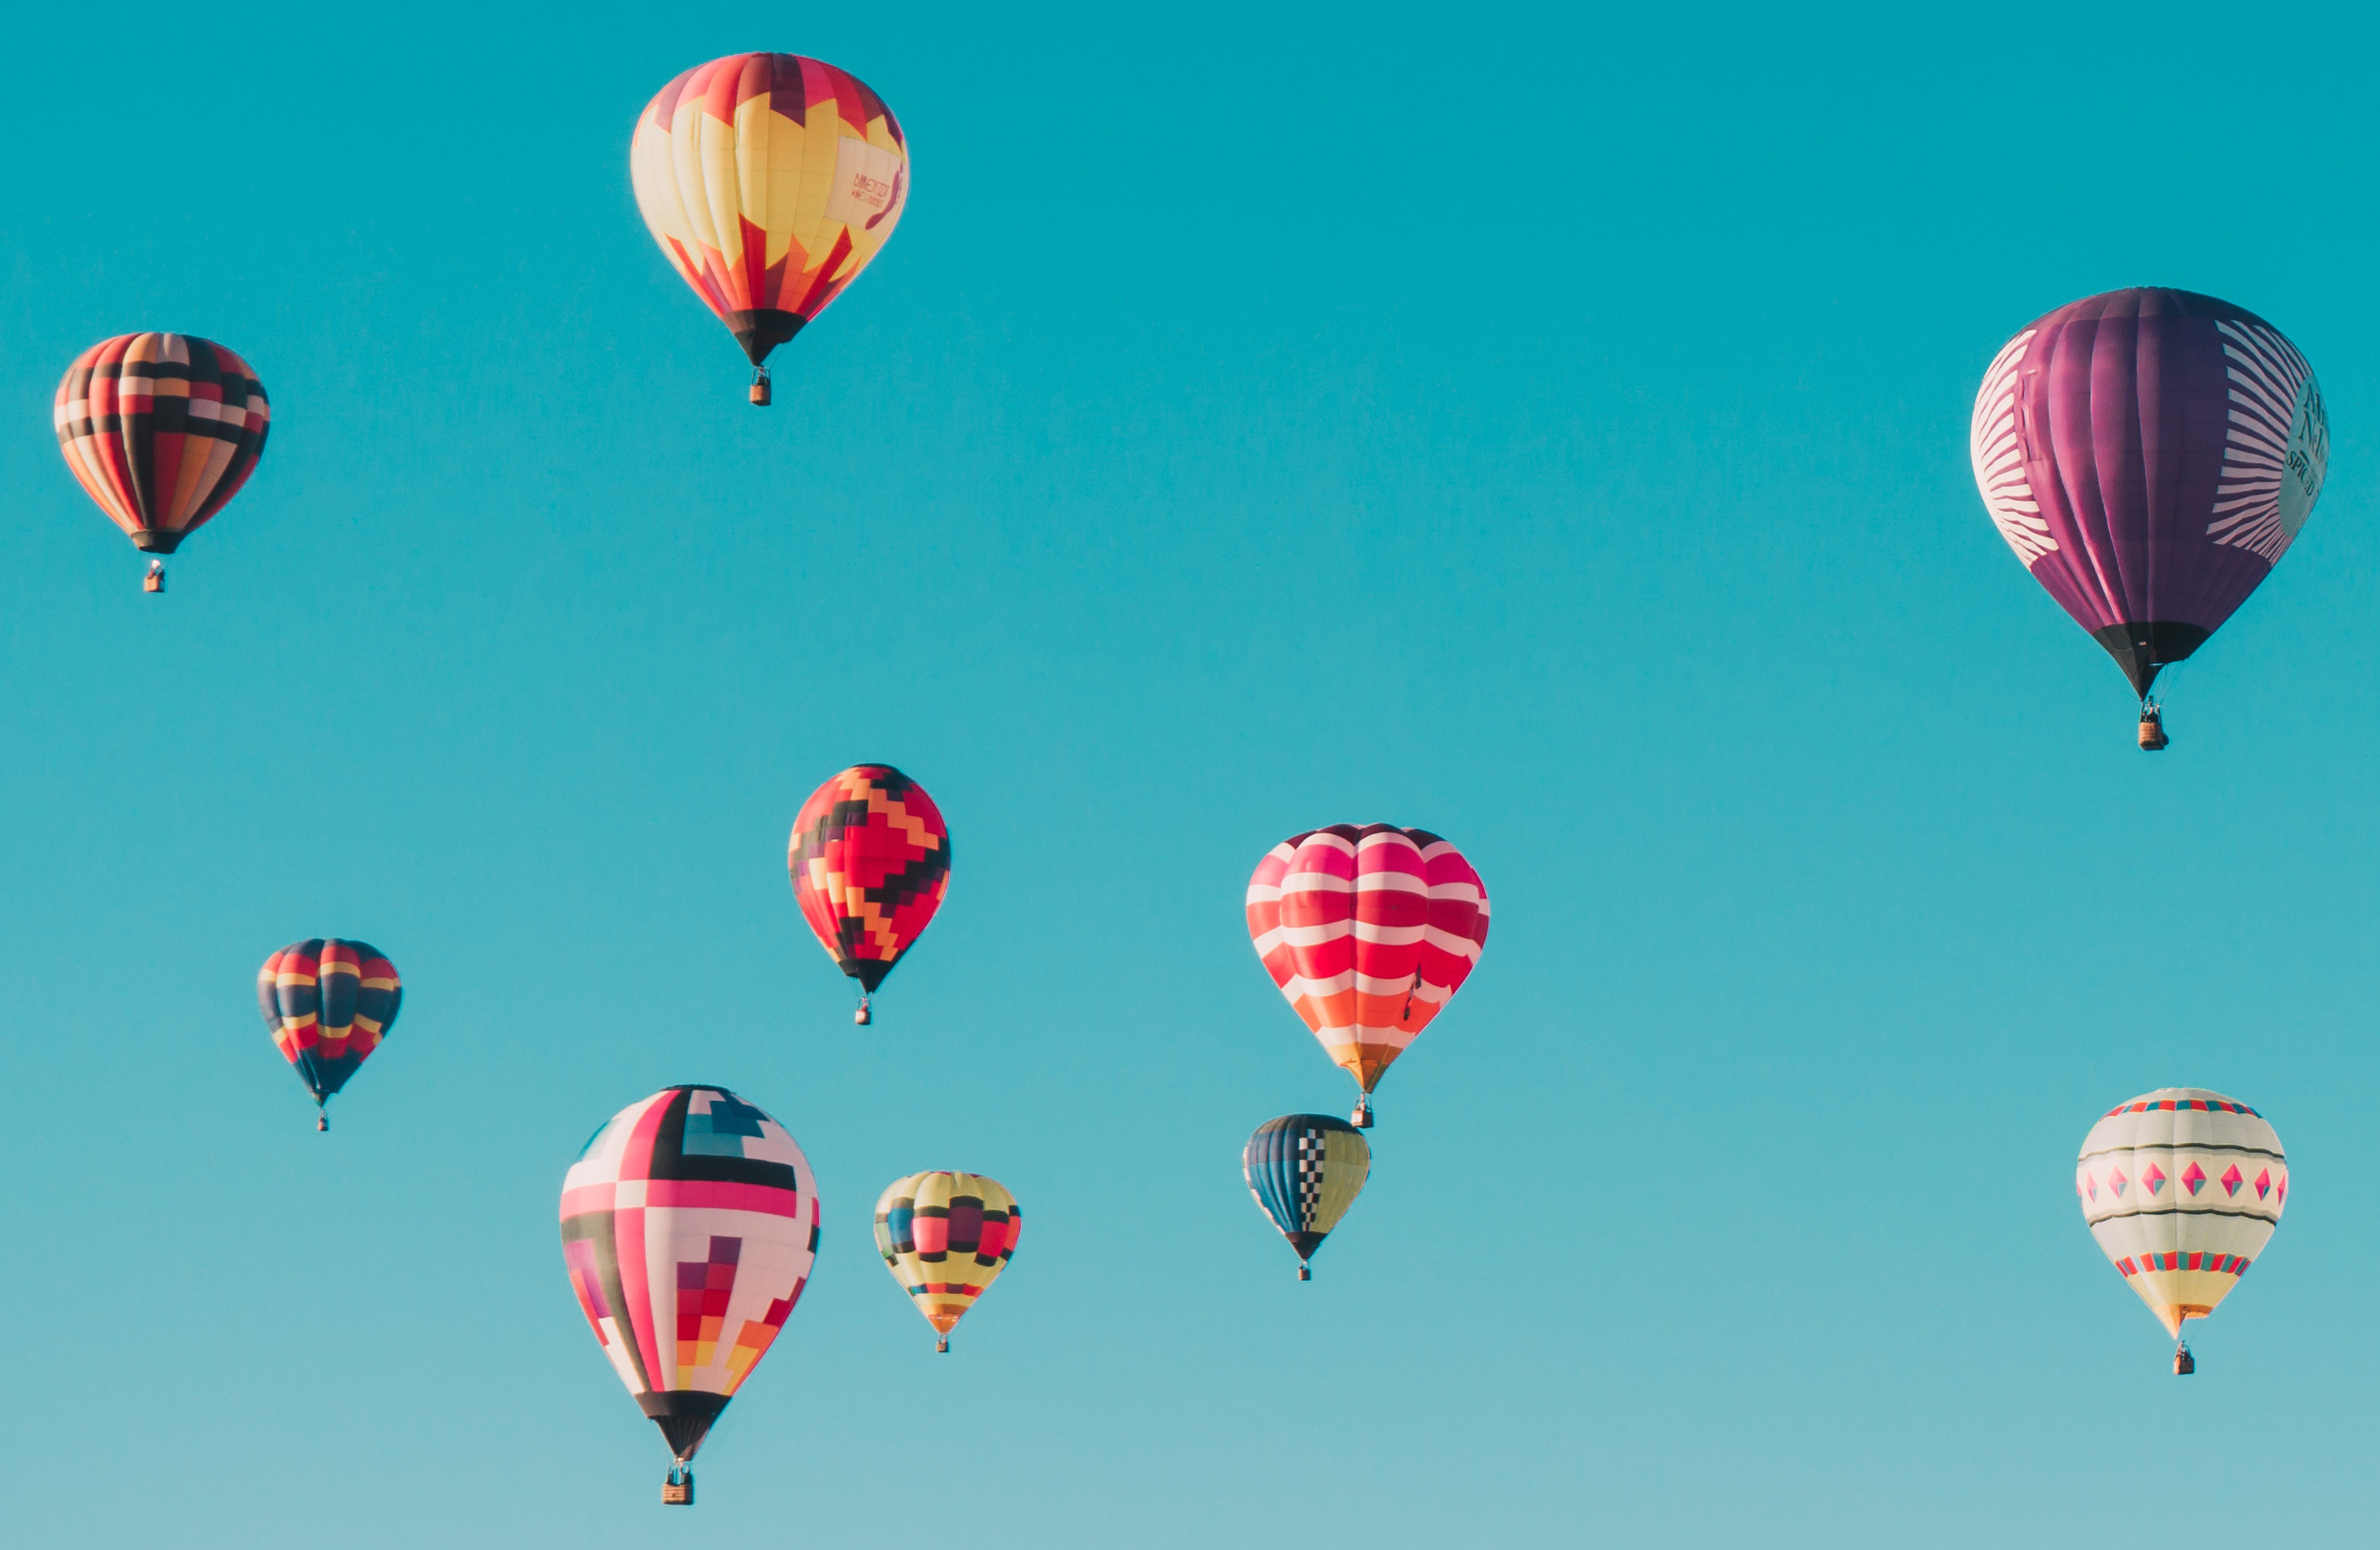 Ten commitments, ten high-flying dreams, symbolised by ten hot-air balloons taking off into the sky.